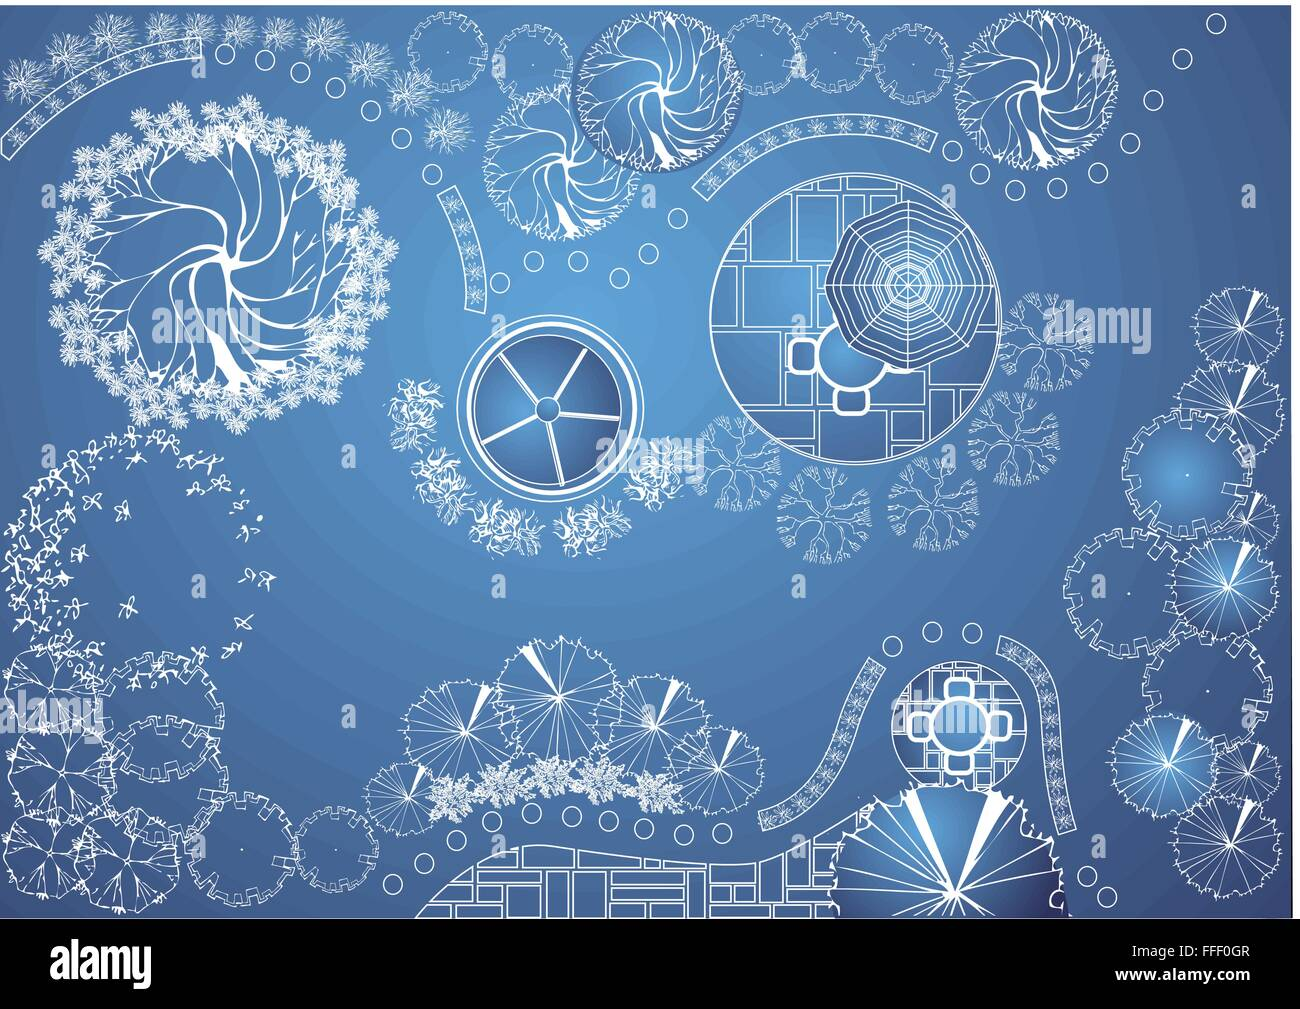 Landscape Design Vector Blueprint Of Architectural Project Garden Plan With Tree Symbols